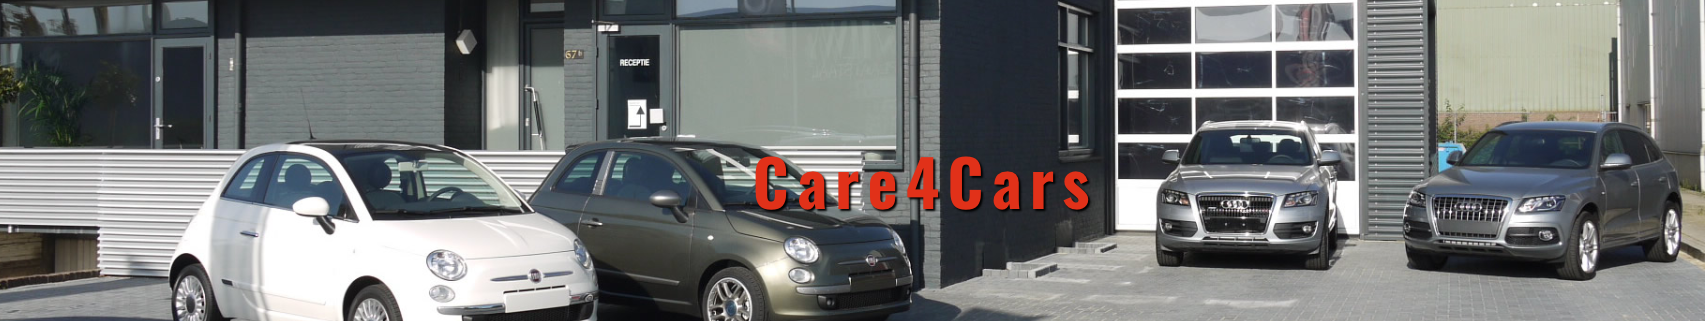 Care 4 Cars autogarage